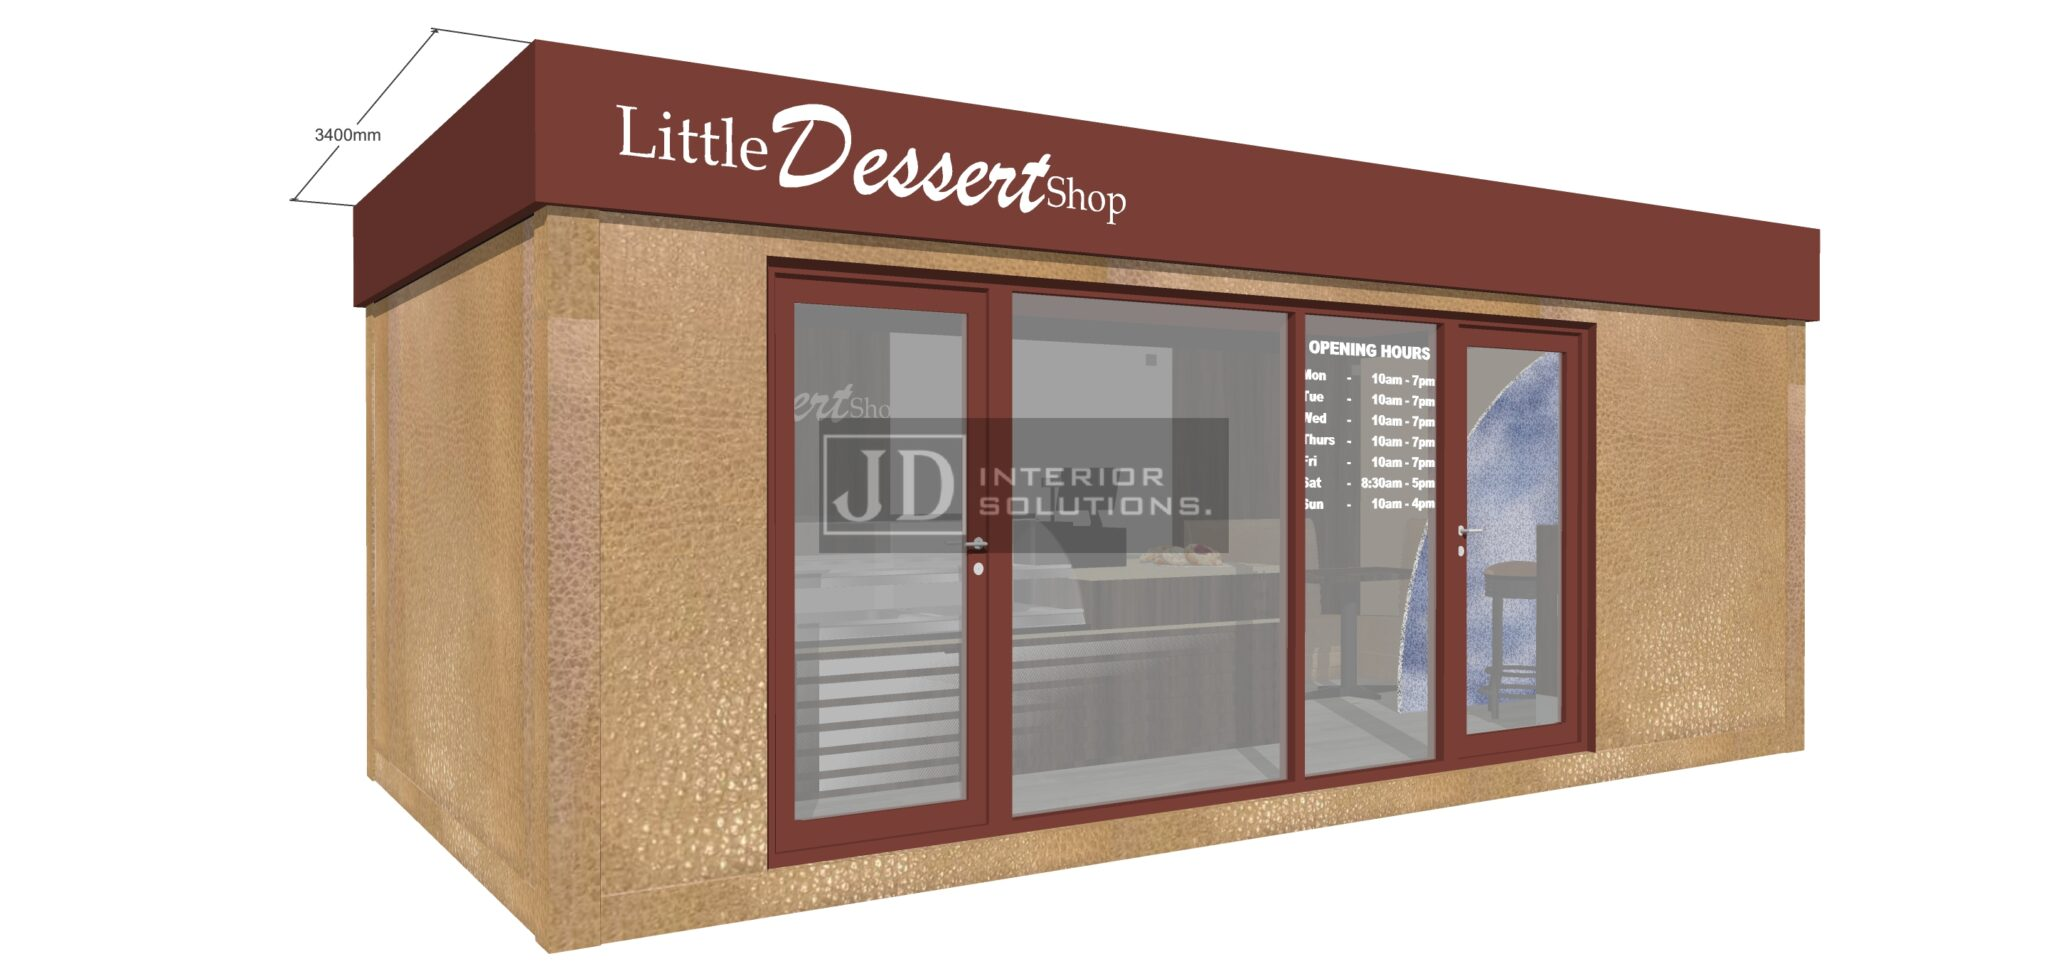 Little Dessert Shop Seating Option 2- 6.8m x 3.4m POD